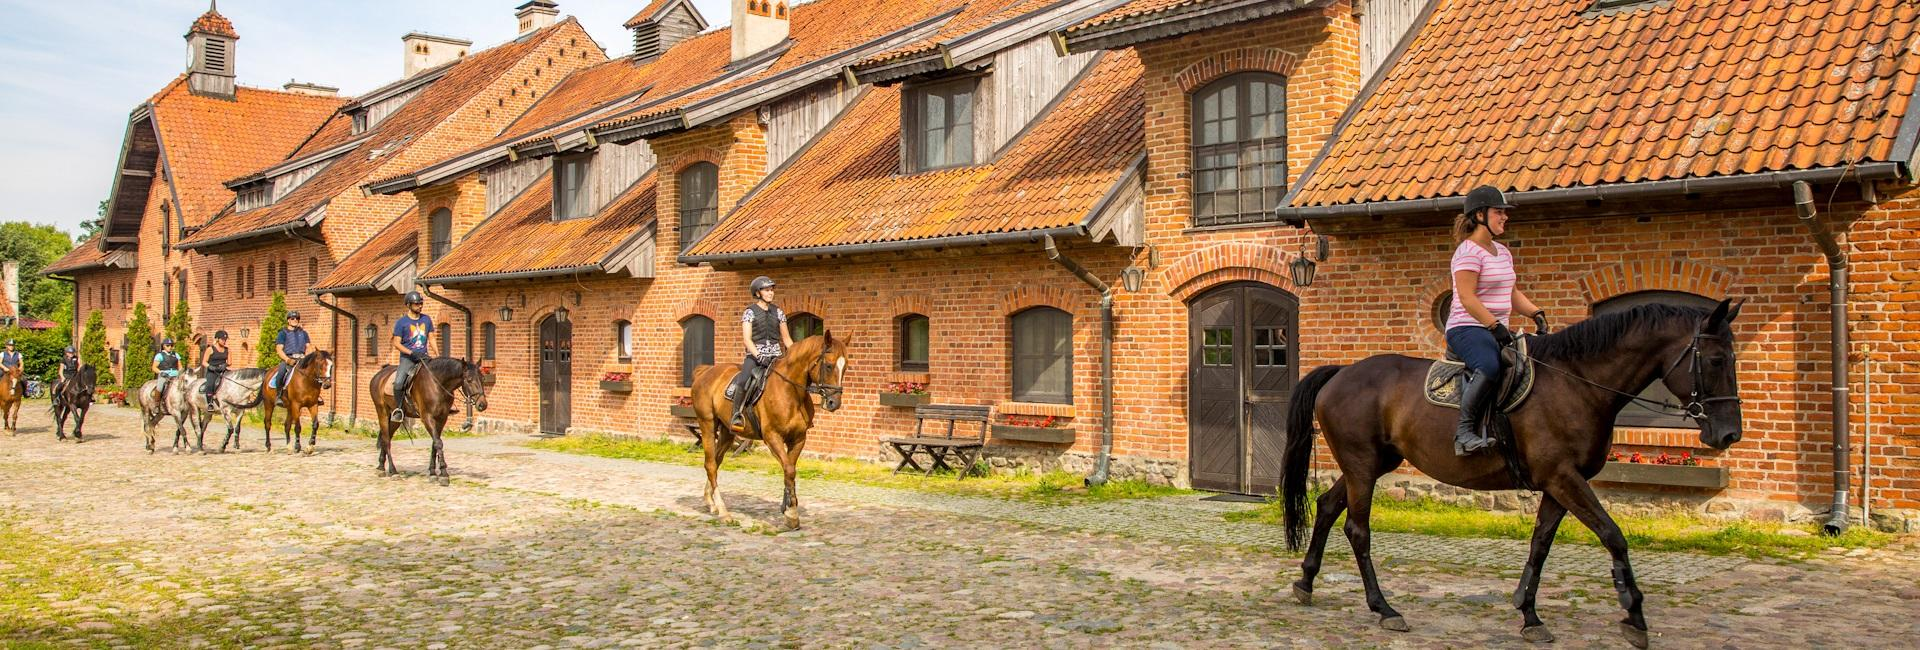 Horse back riding at Palace and Grange Galiny in Warmia and Masuria